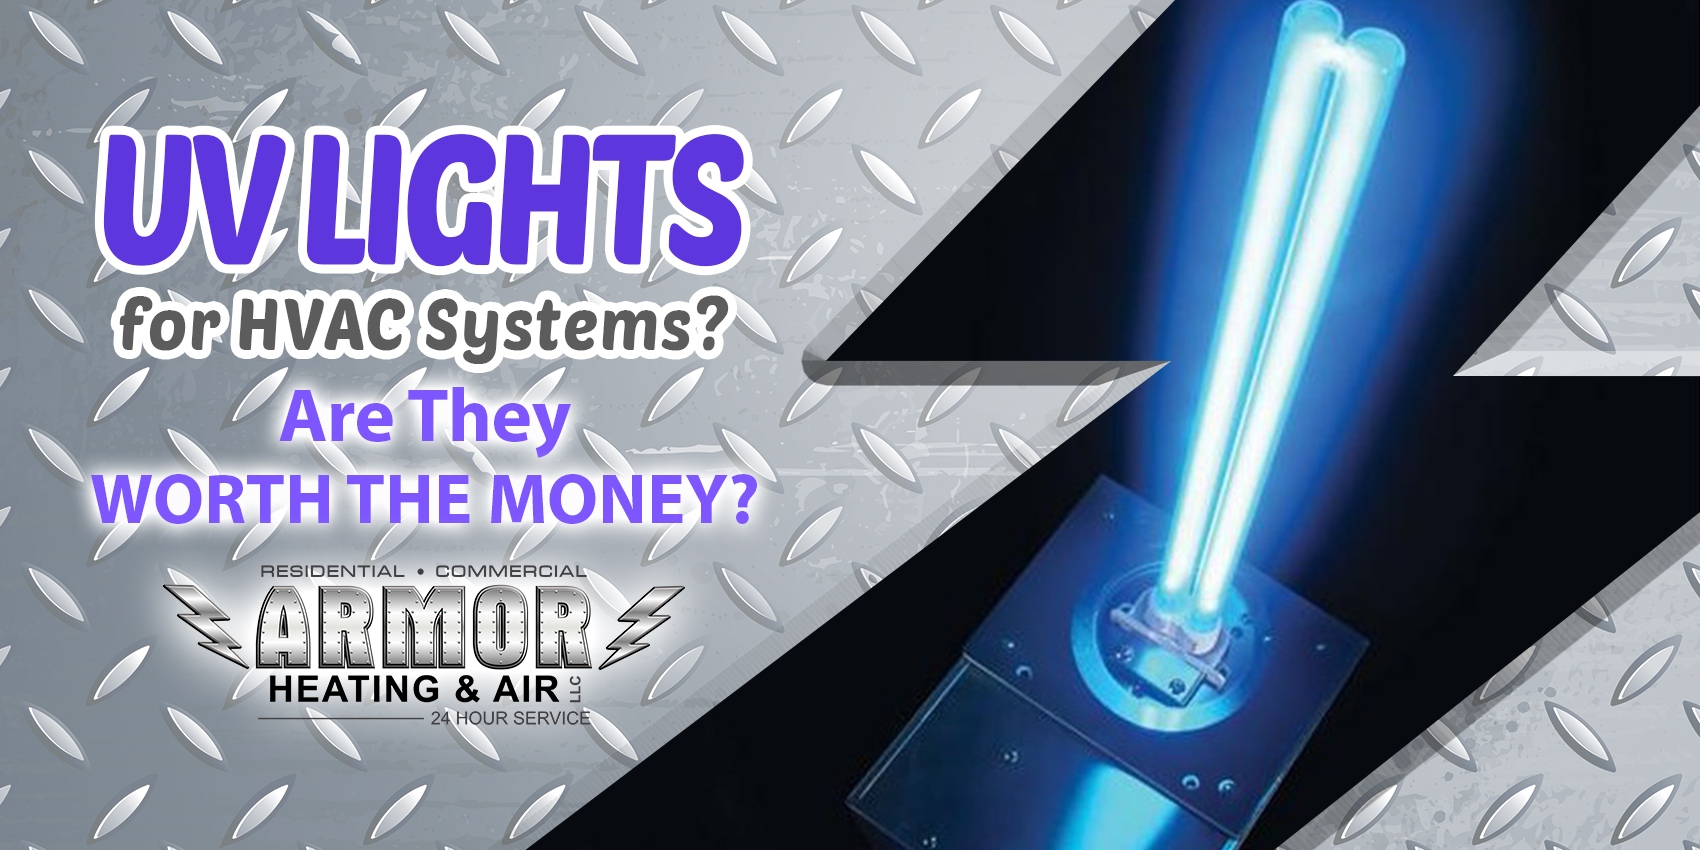 UV Lights for HVAC Systems? Are They Worth the Money?